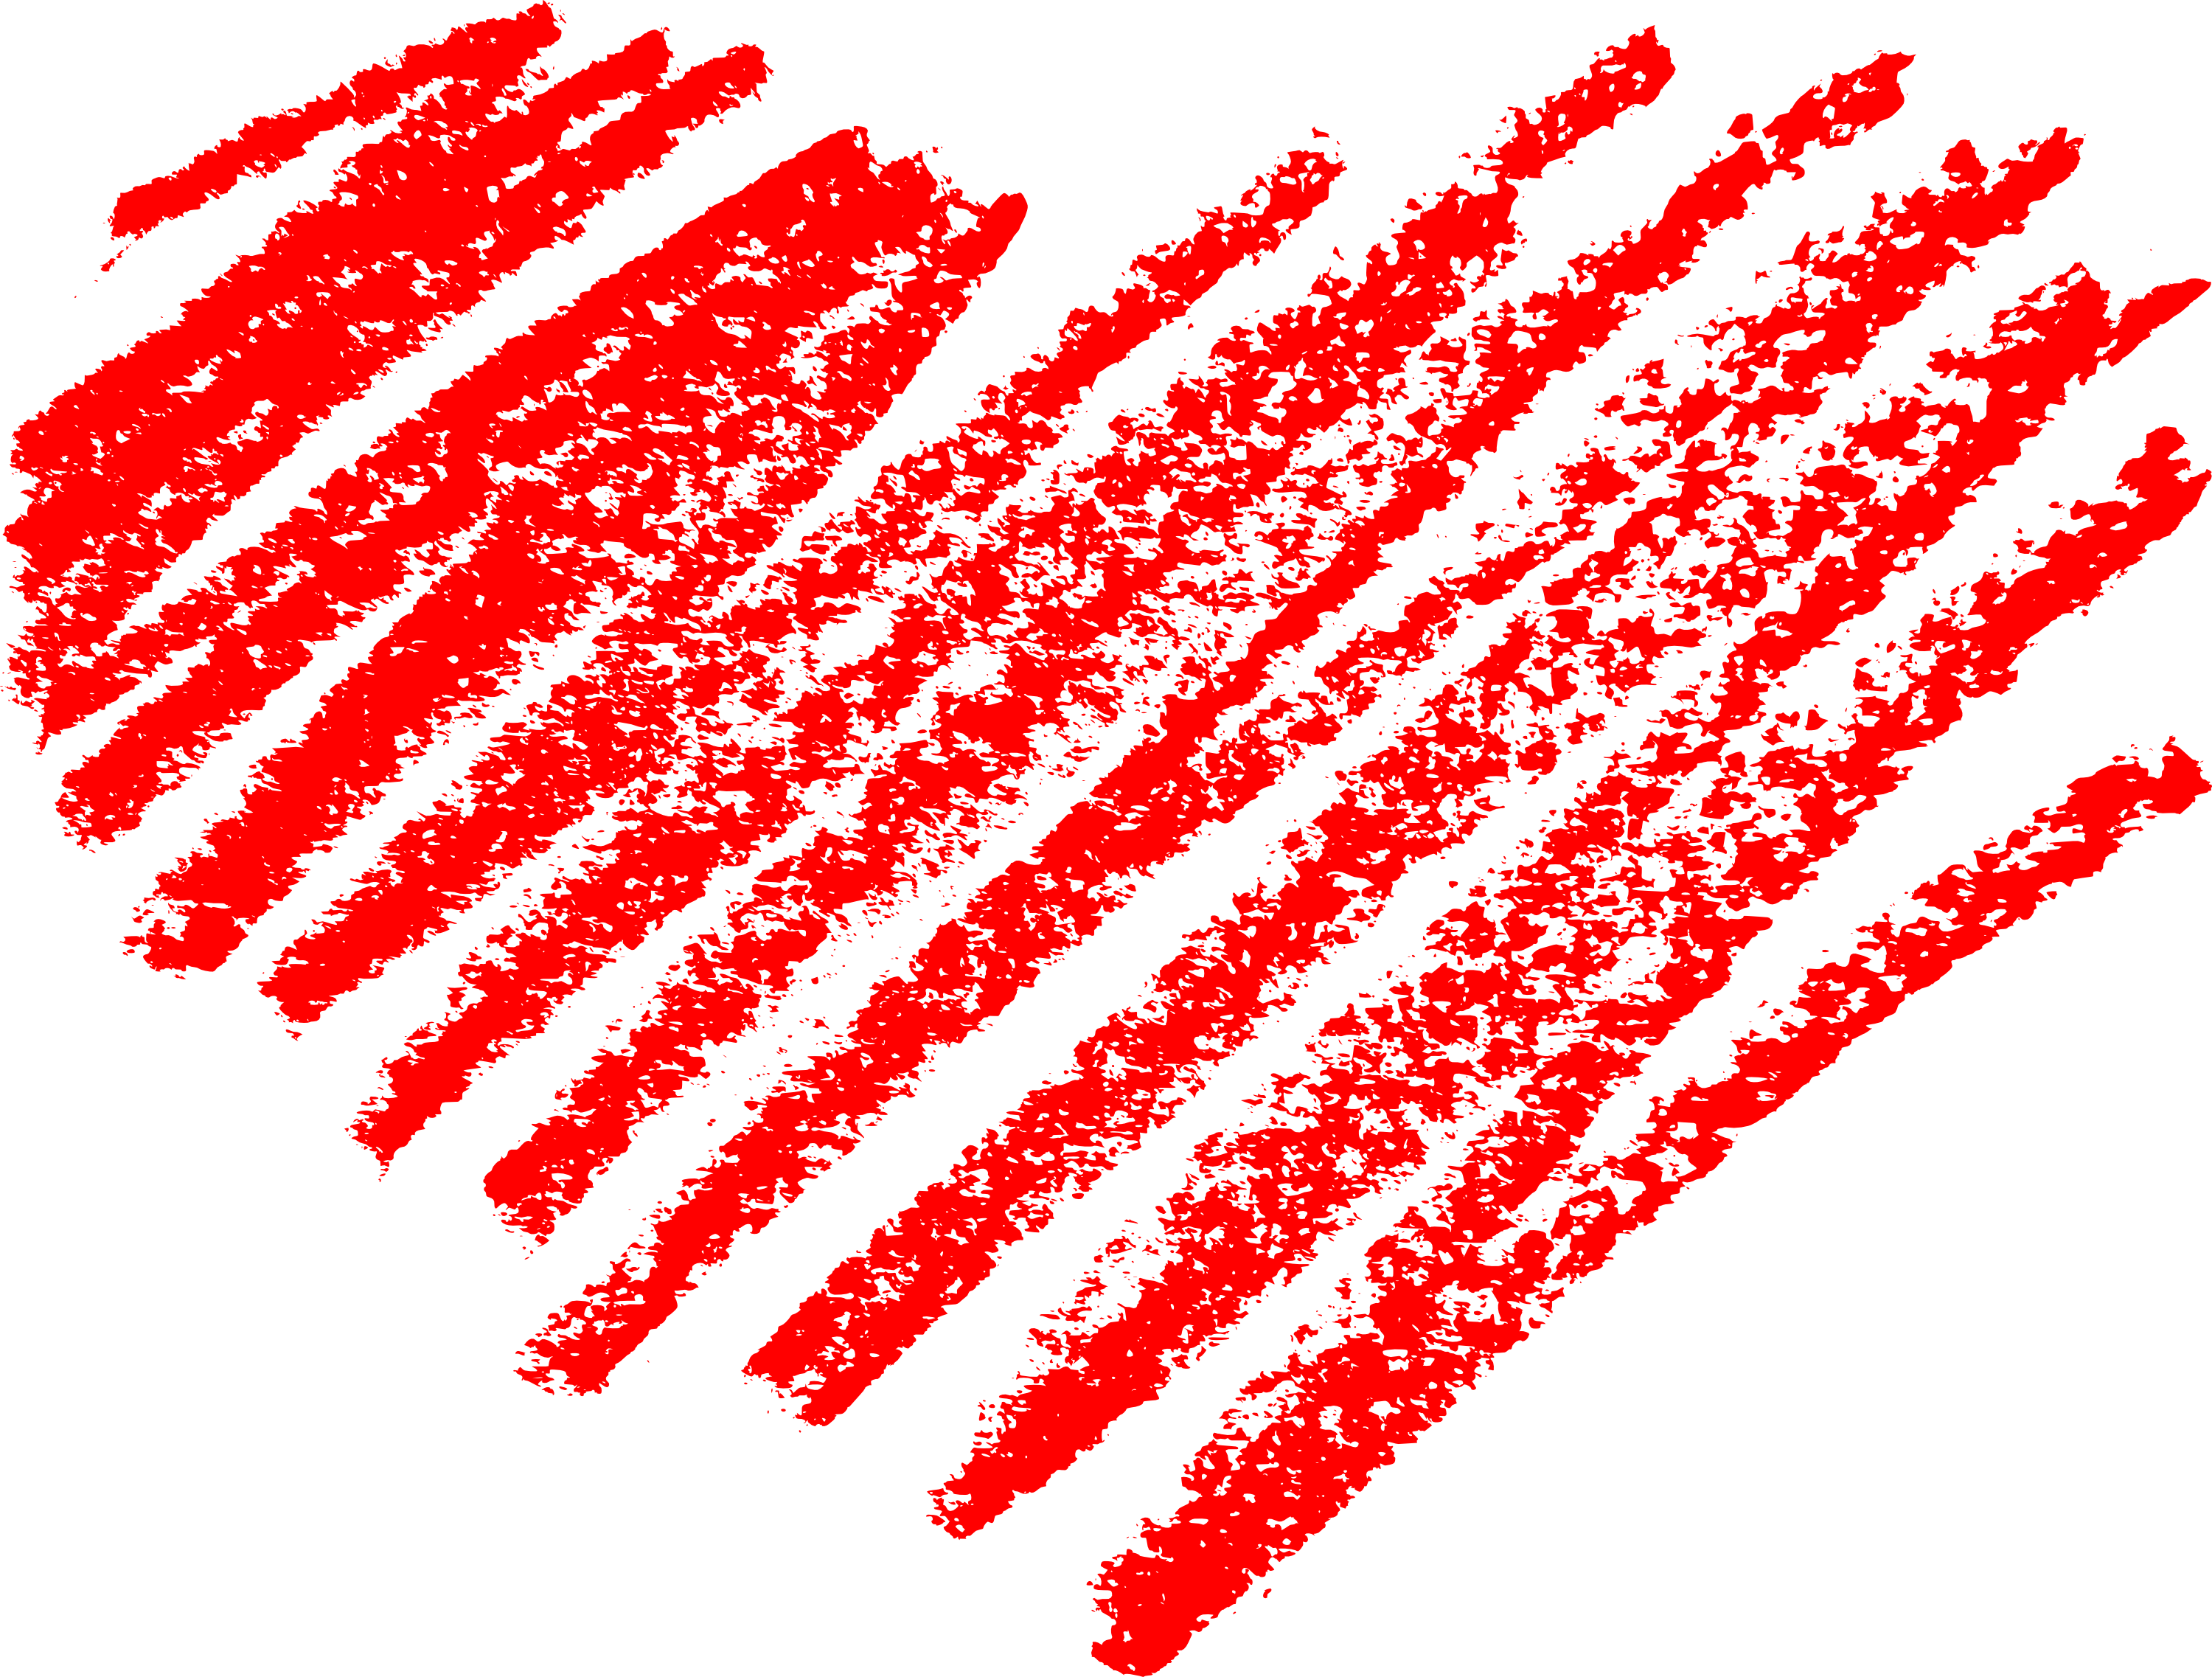 5 scribble heart  png transparent  onlygfx com rectangle clip art with the word rectangle clip art frame